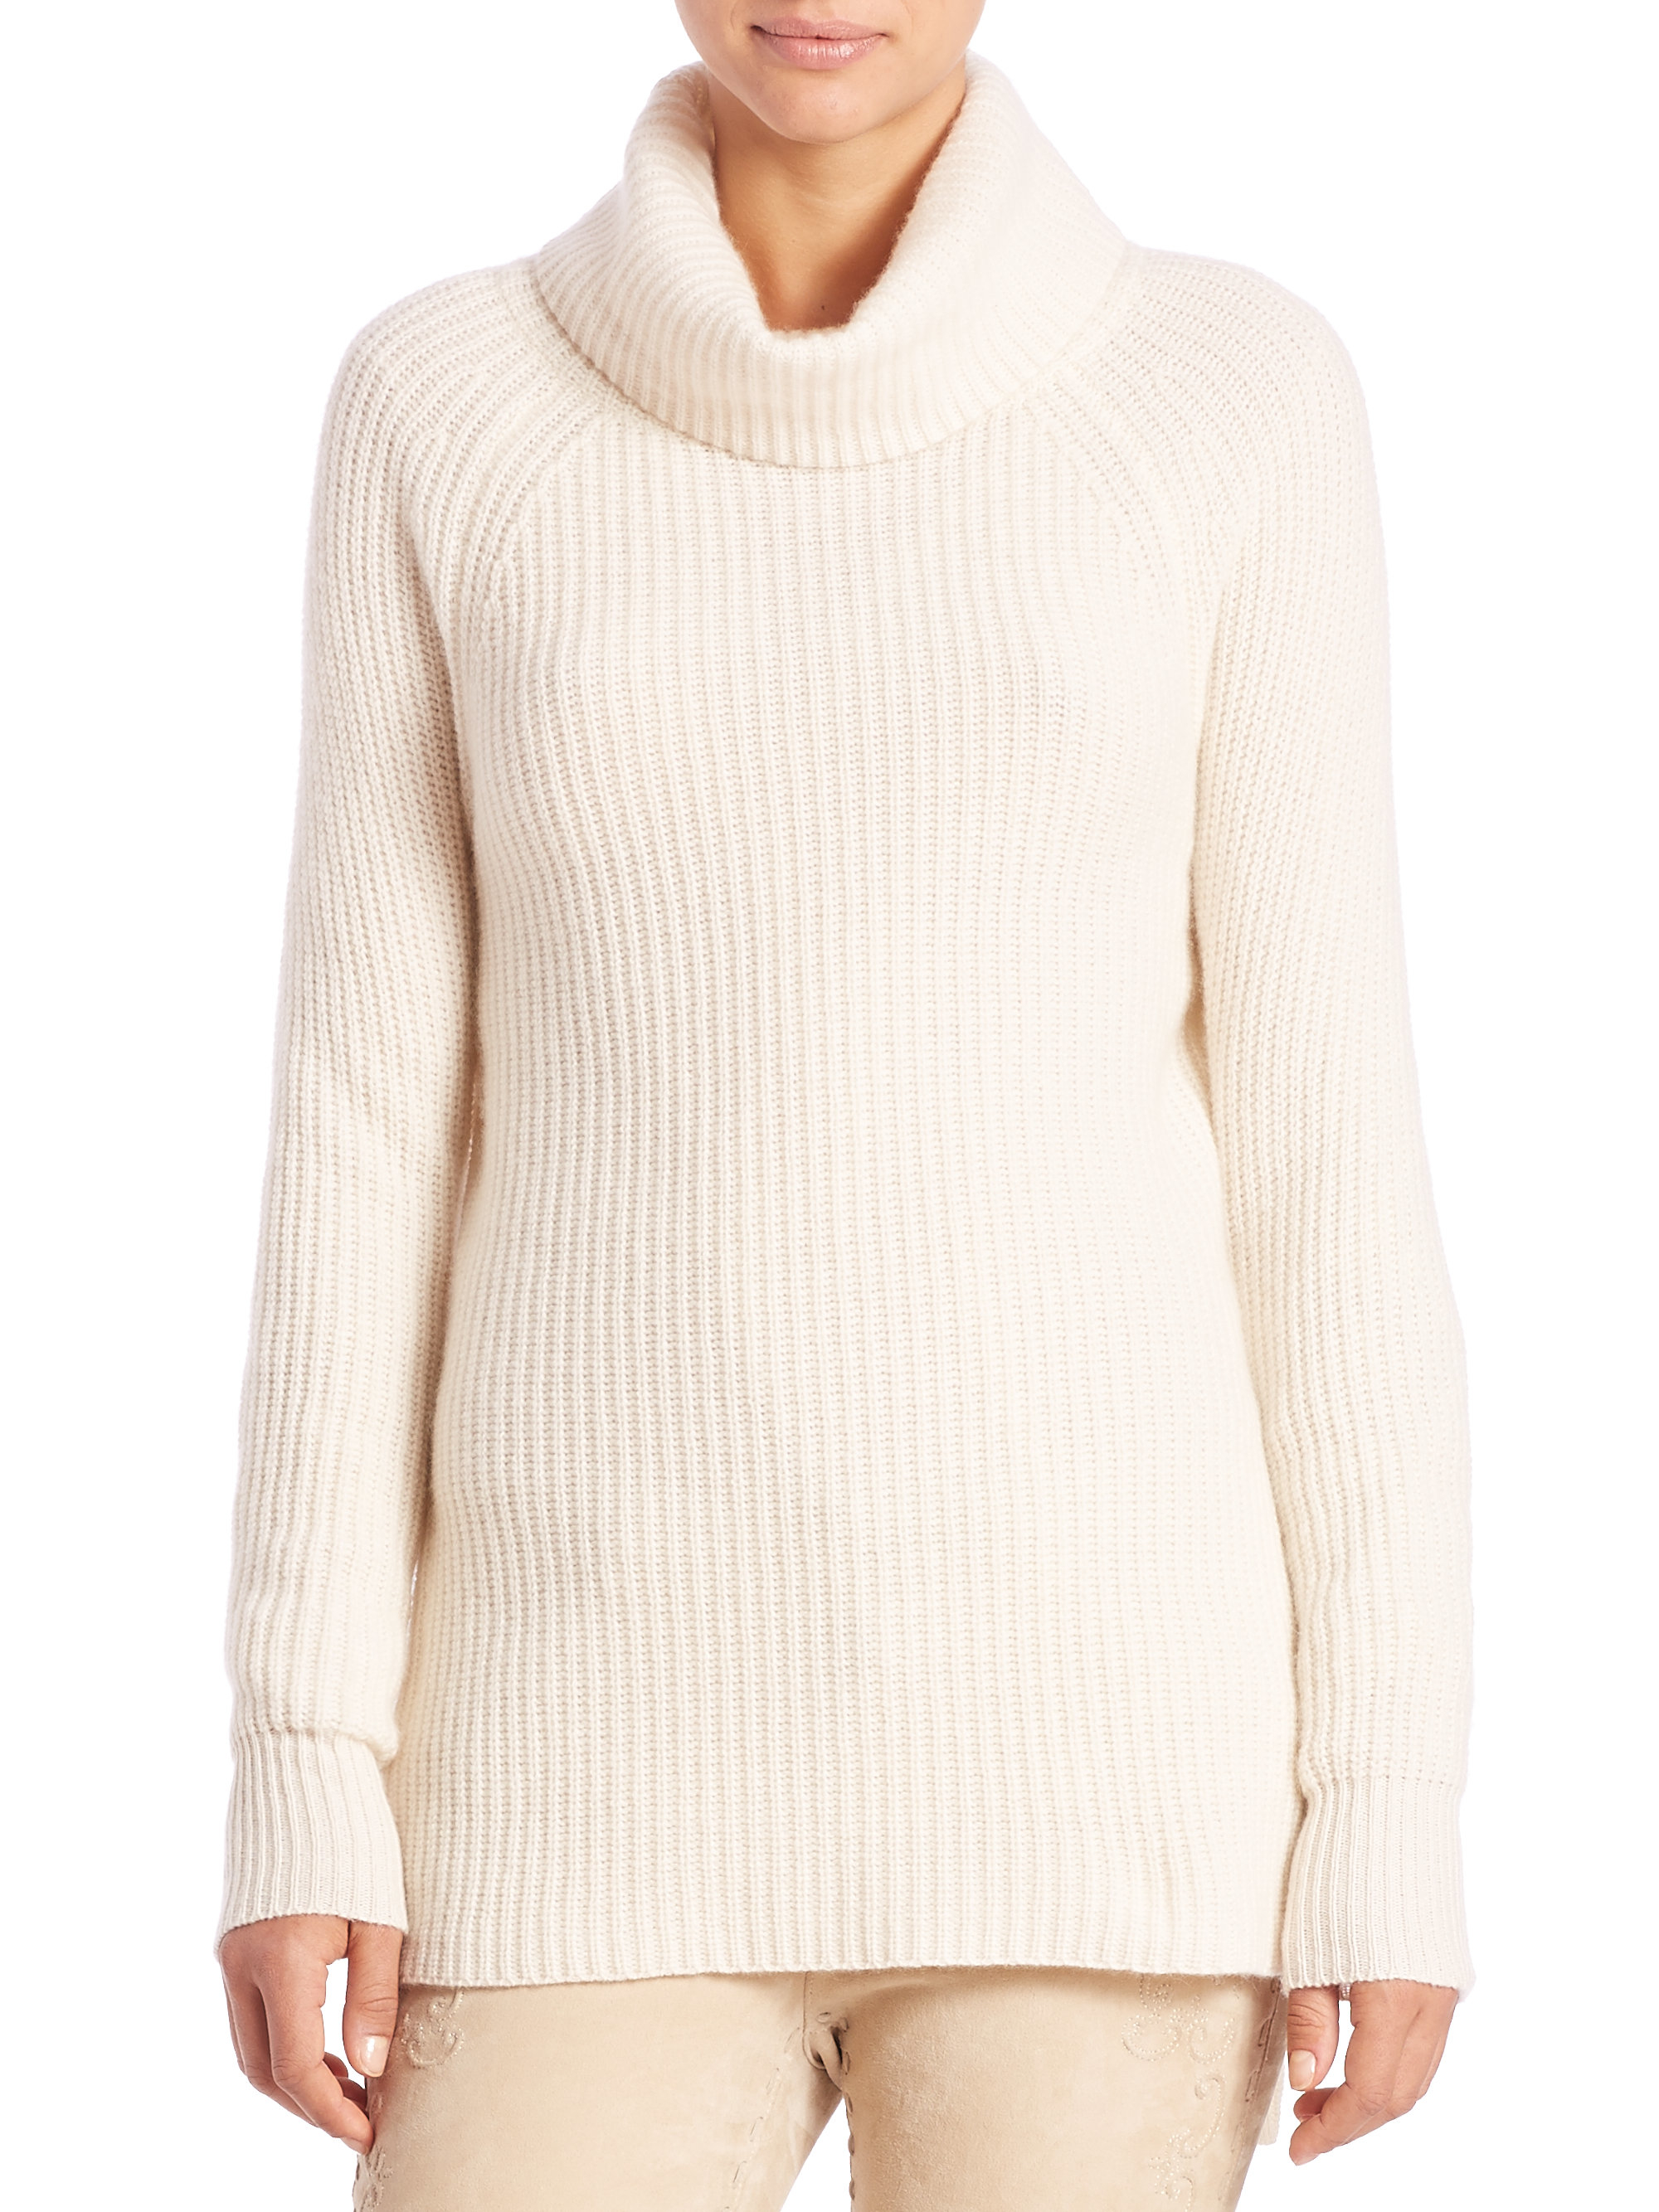 Polo ralph lauren Alpaca-blend Turtleneck Sweater in White | Lyst